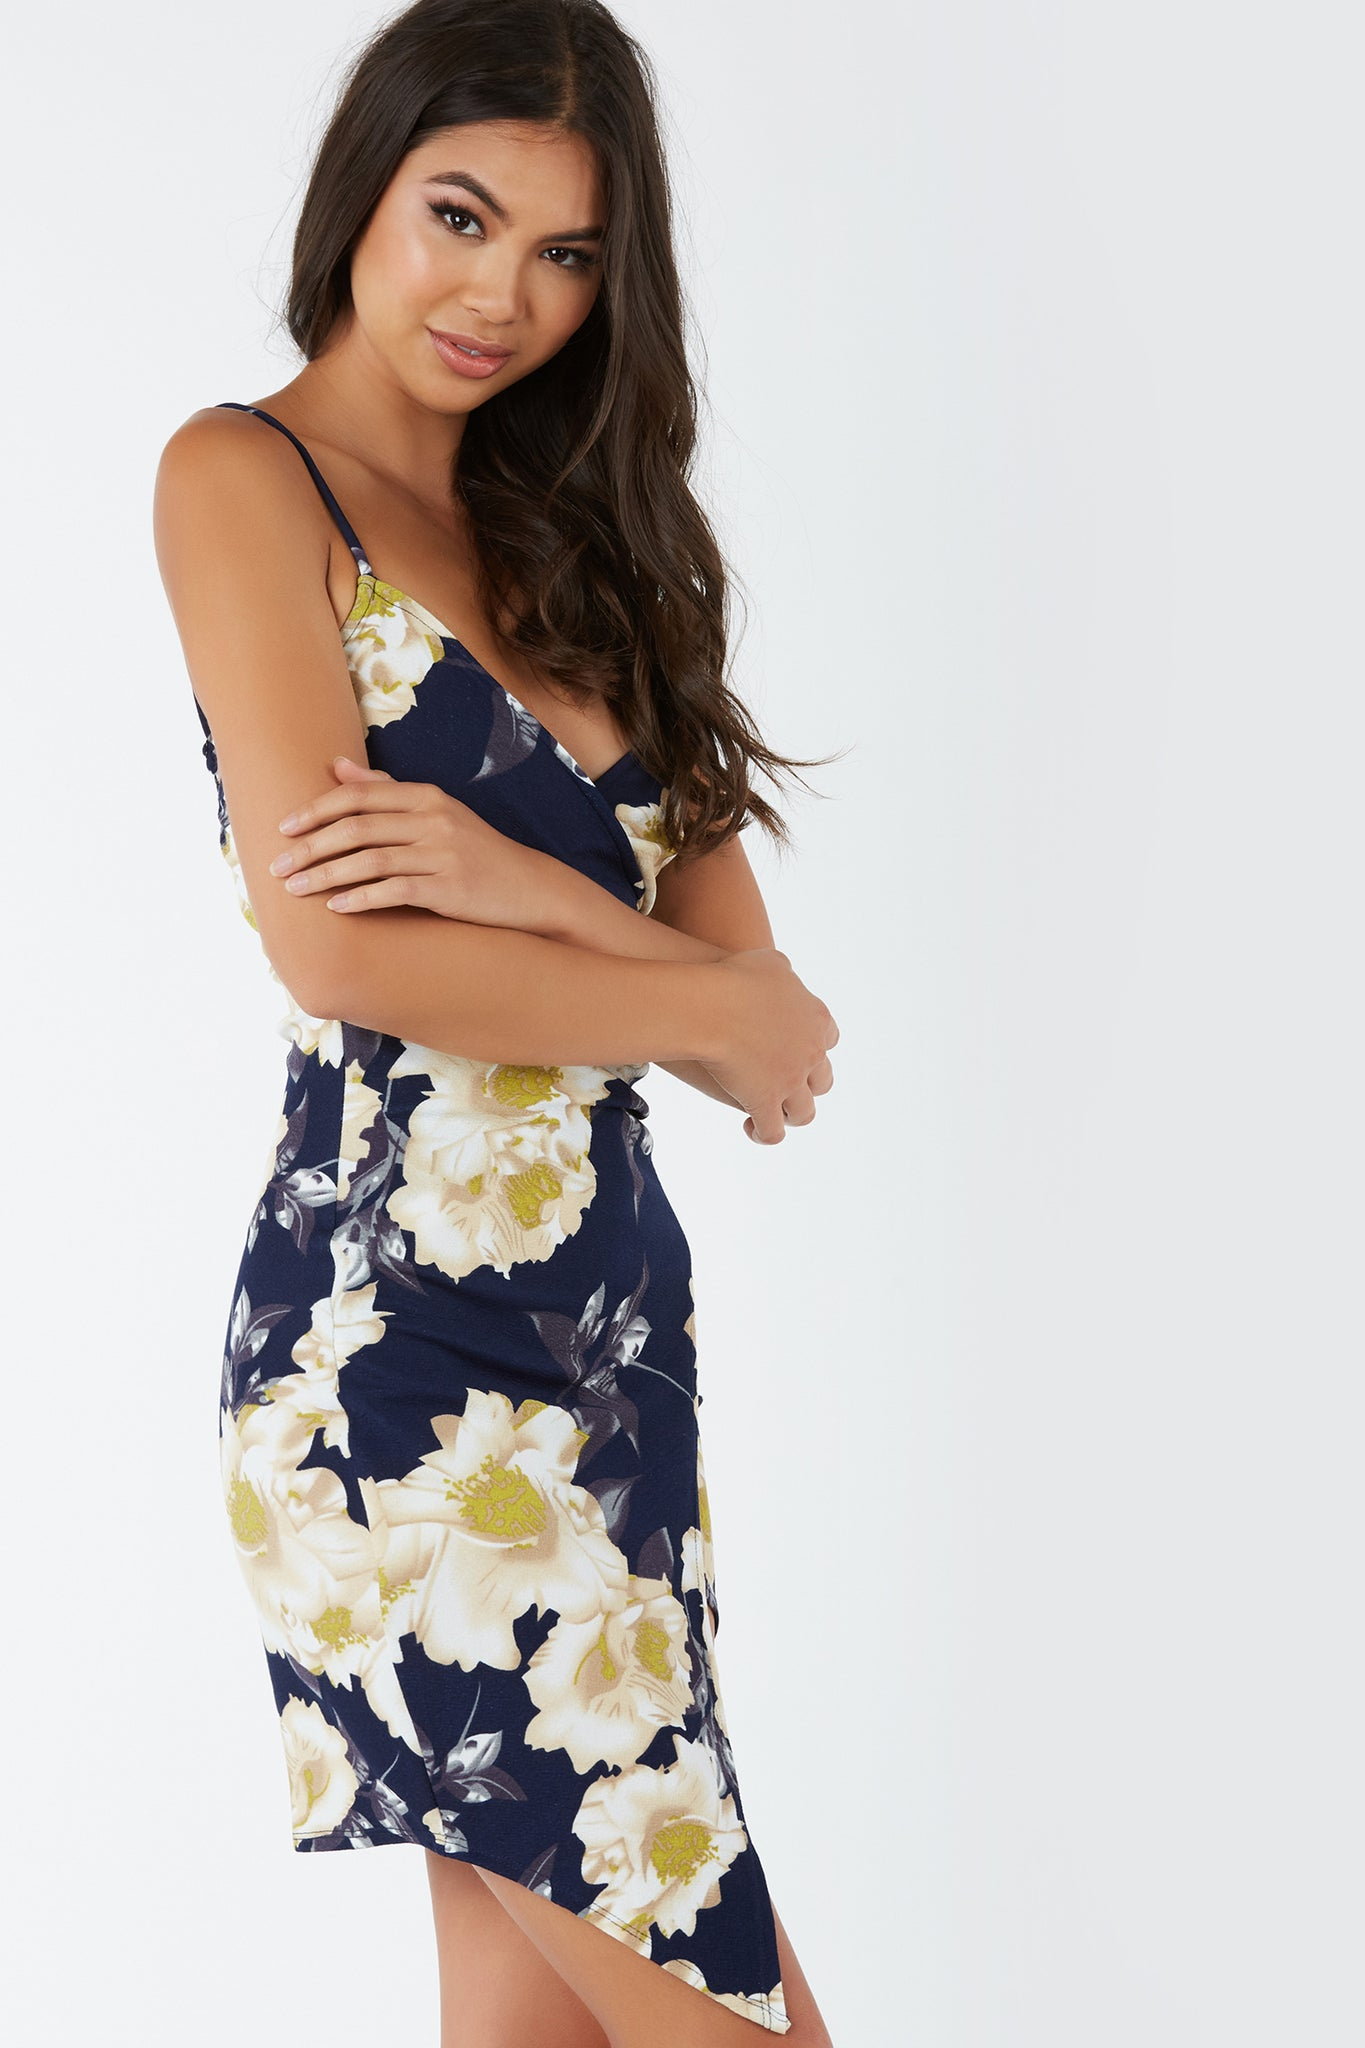 Sleeveless V-neck enveloe dress with wrap design. Floral print throughout with bodycon fit.